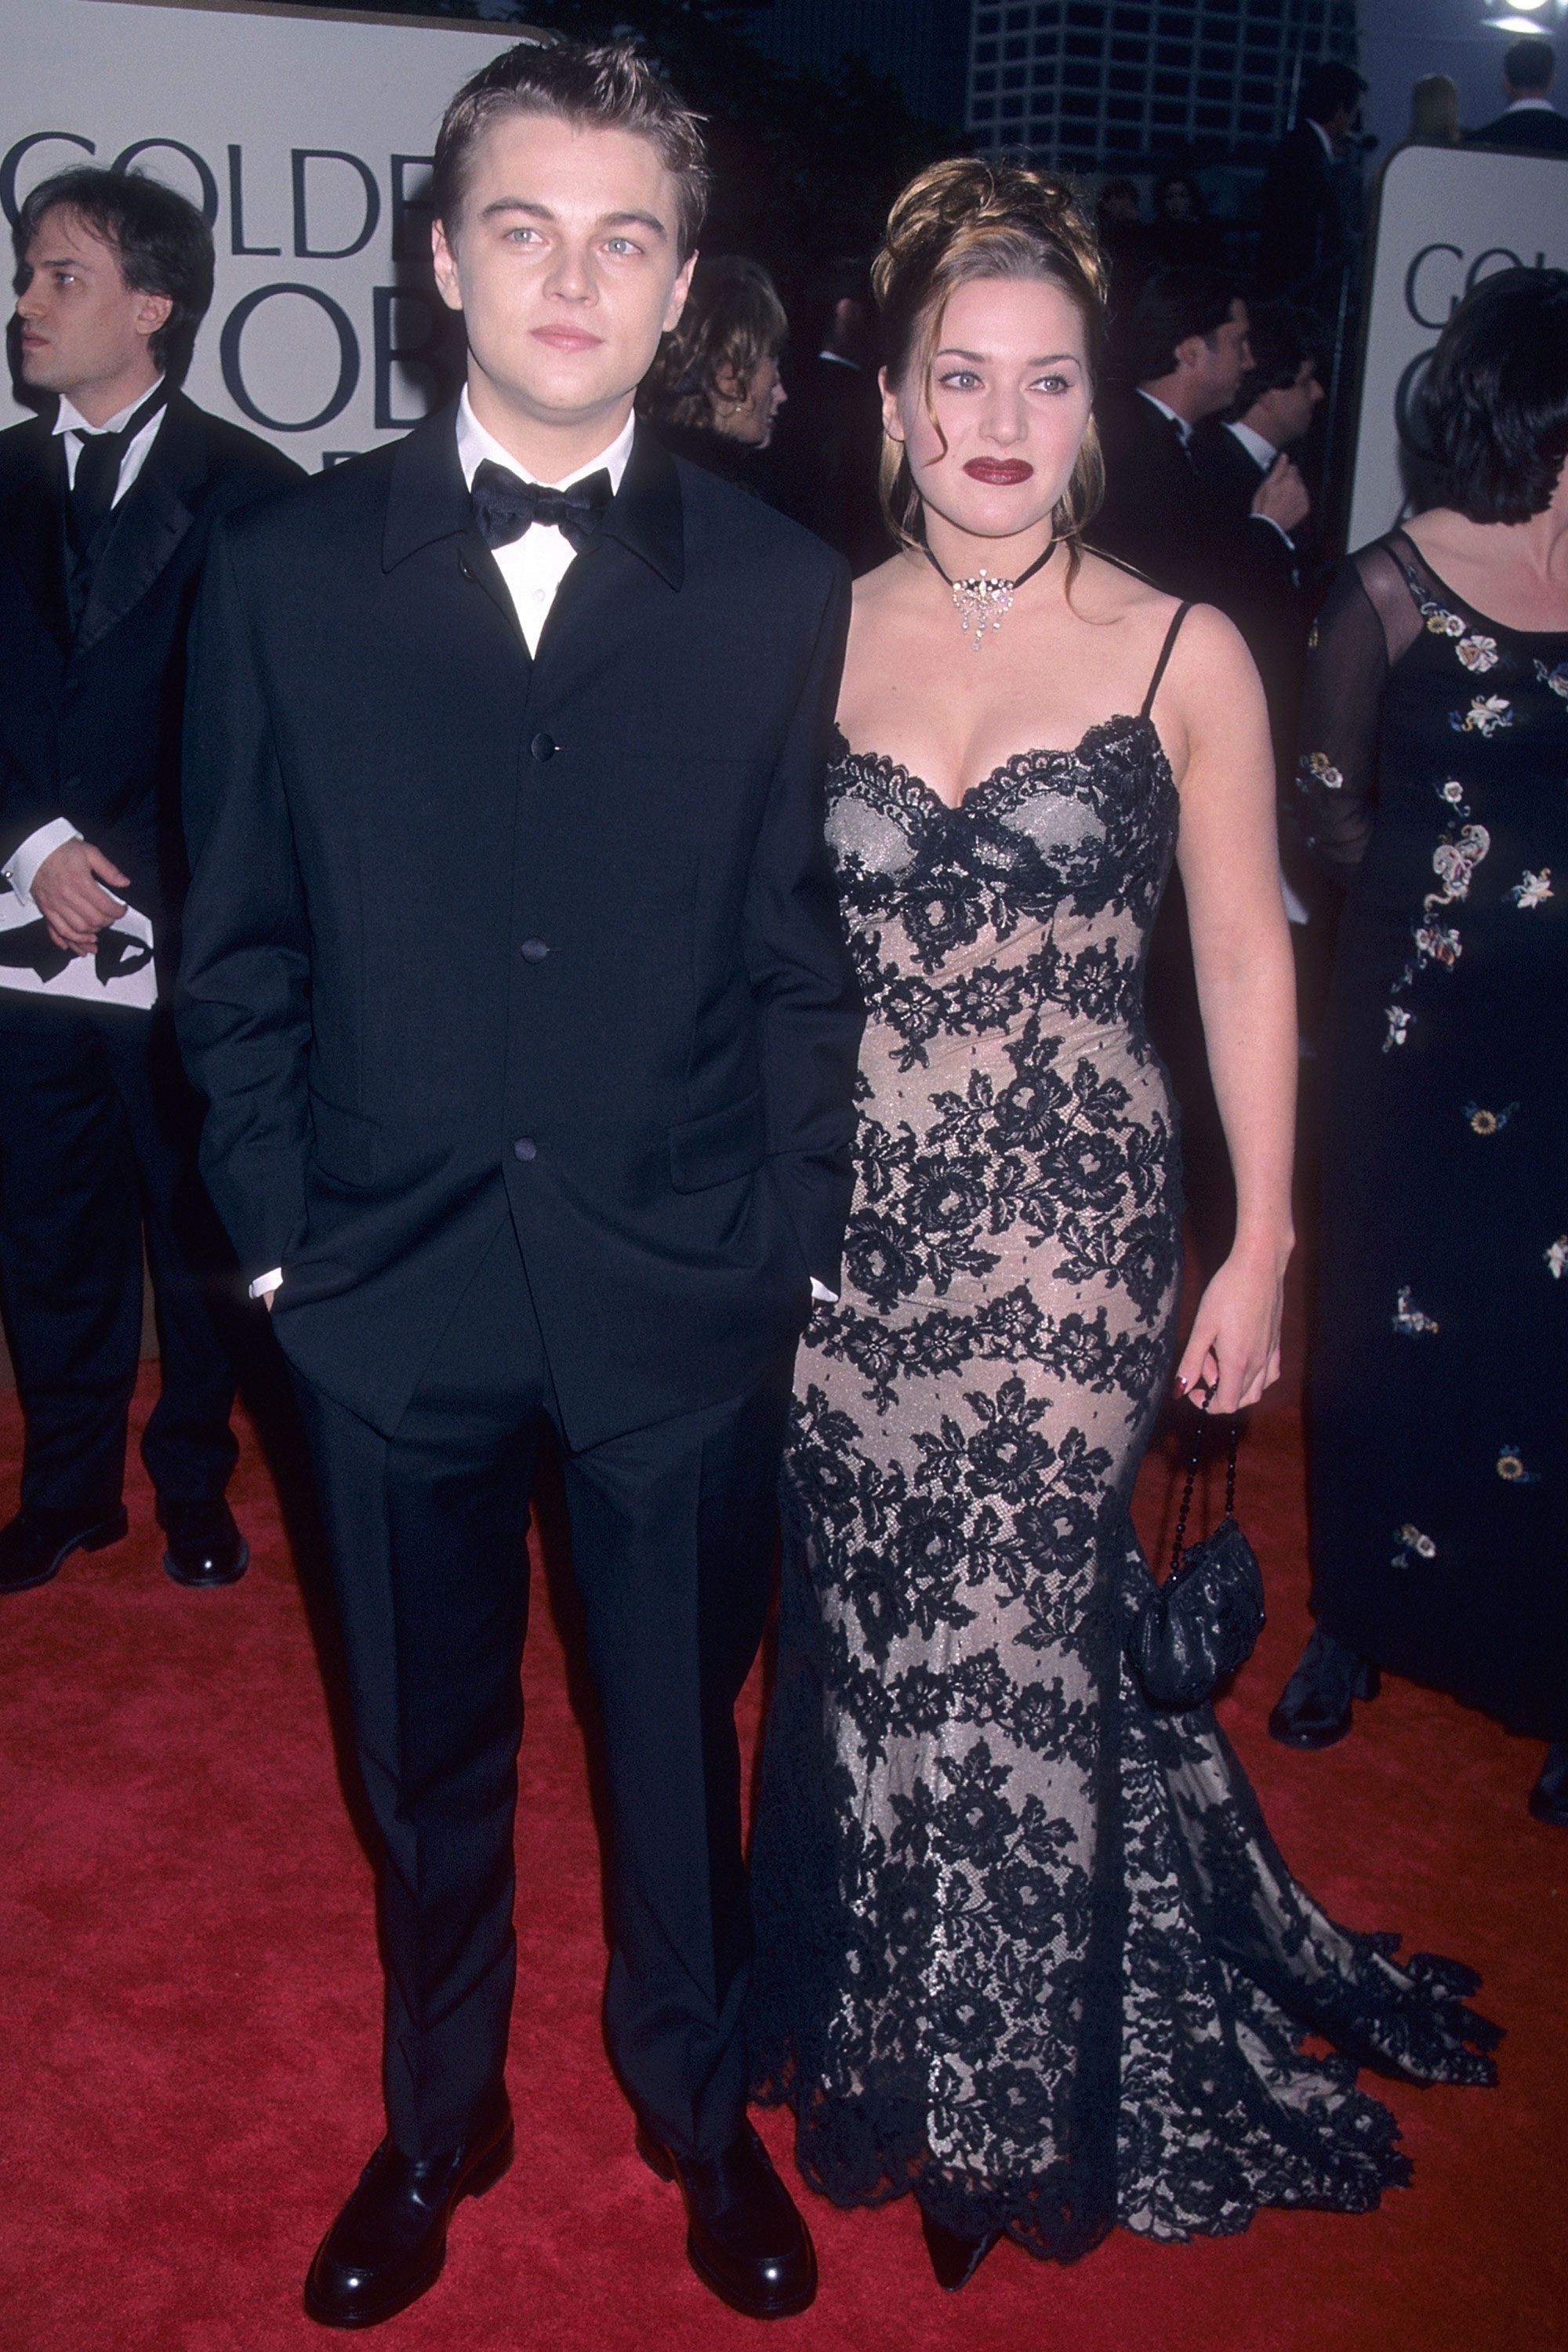 Kate Winslet And Leonardo Dicaprio S Friendship In Pictures Kate And Leo On The Red Carpet